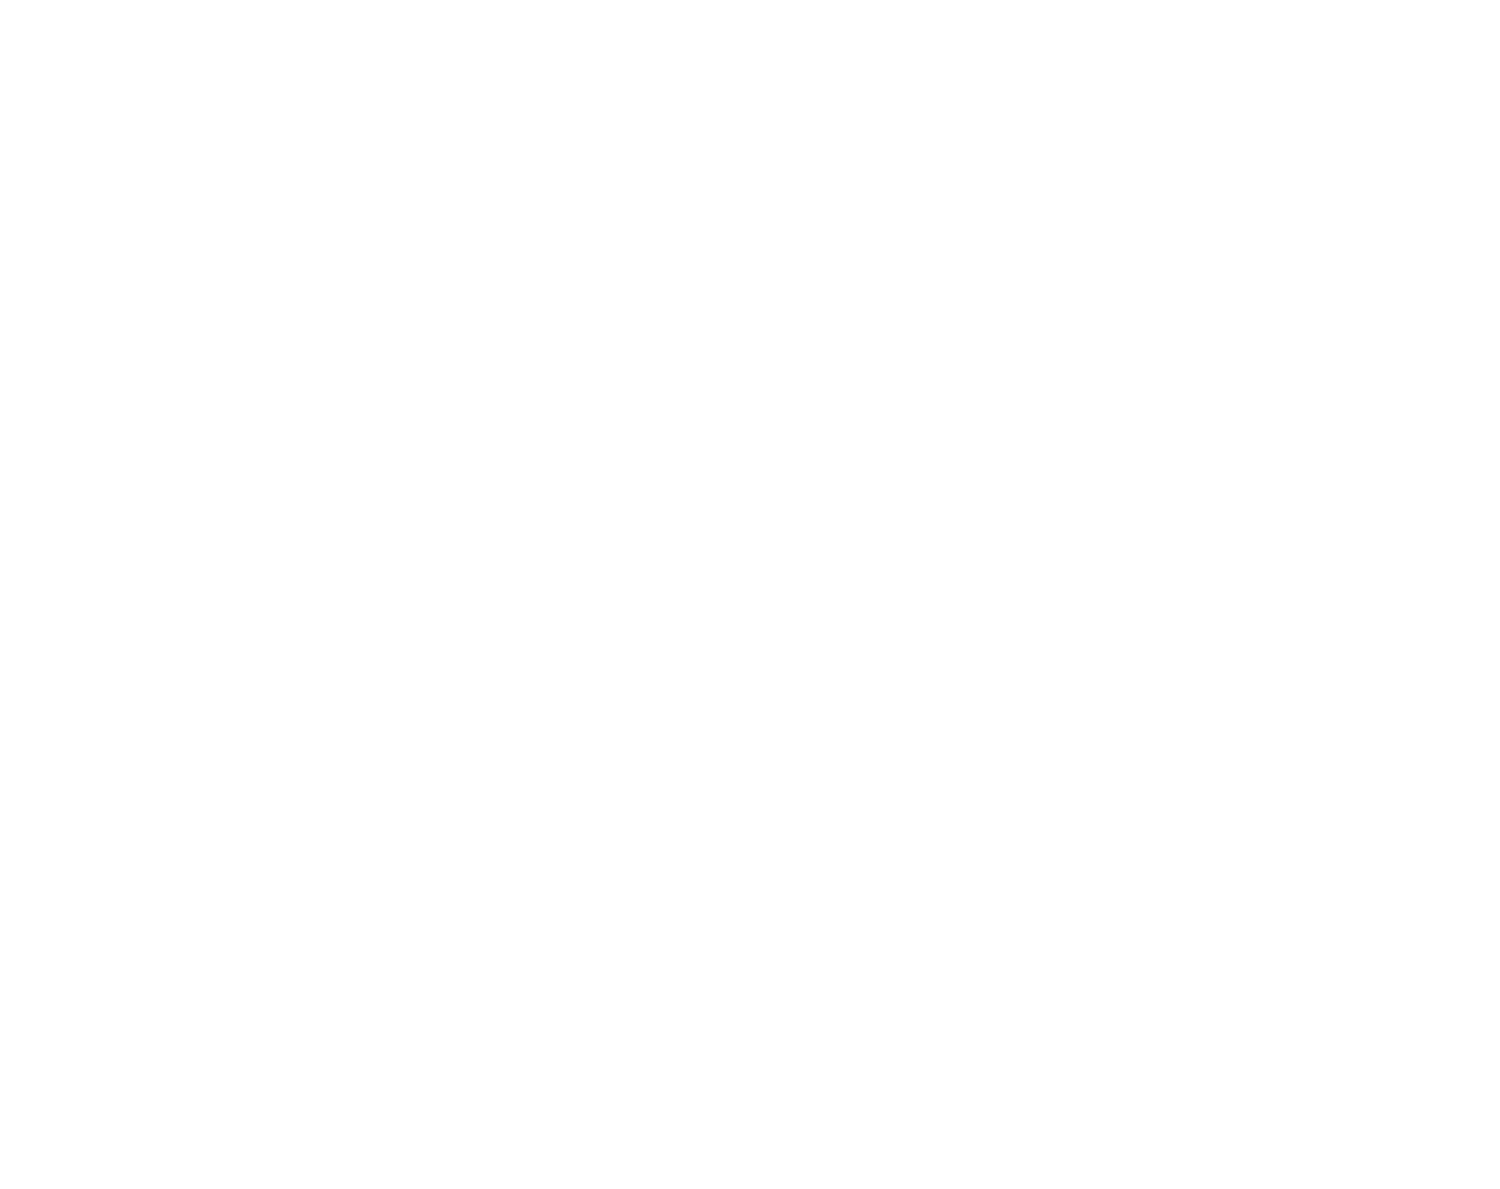 Bean Tree Cafe | Coffee Shop | Cafe | Ice Cream | Lynchburg